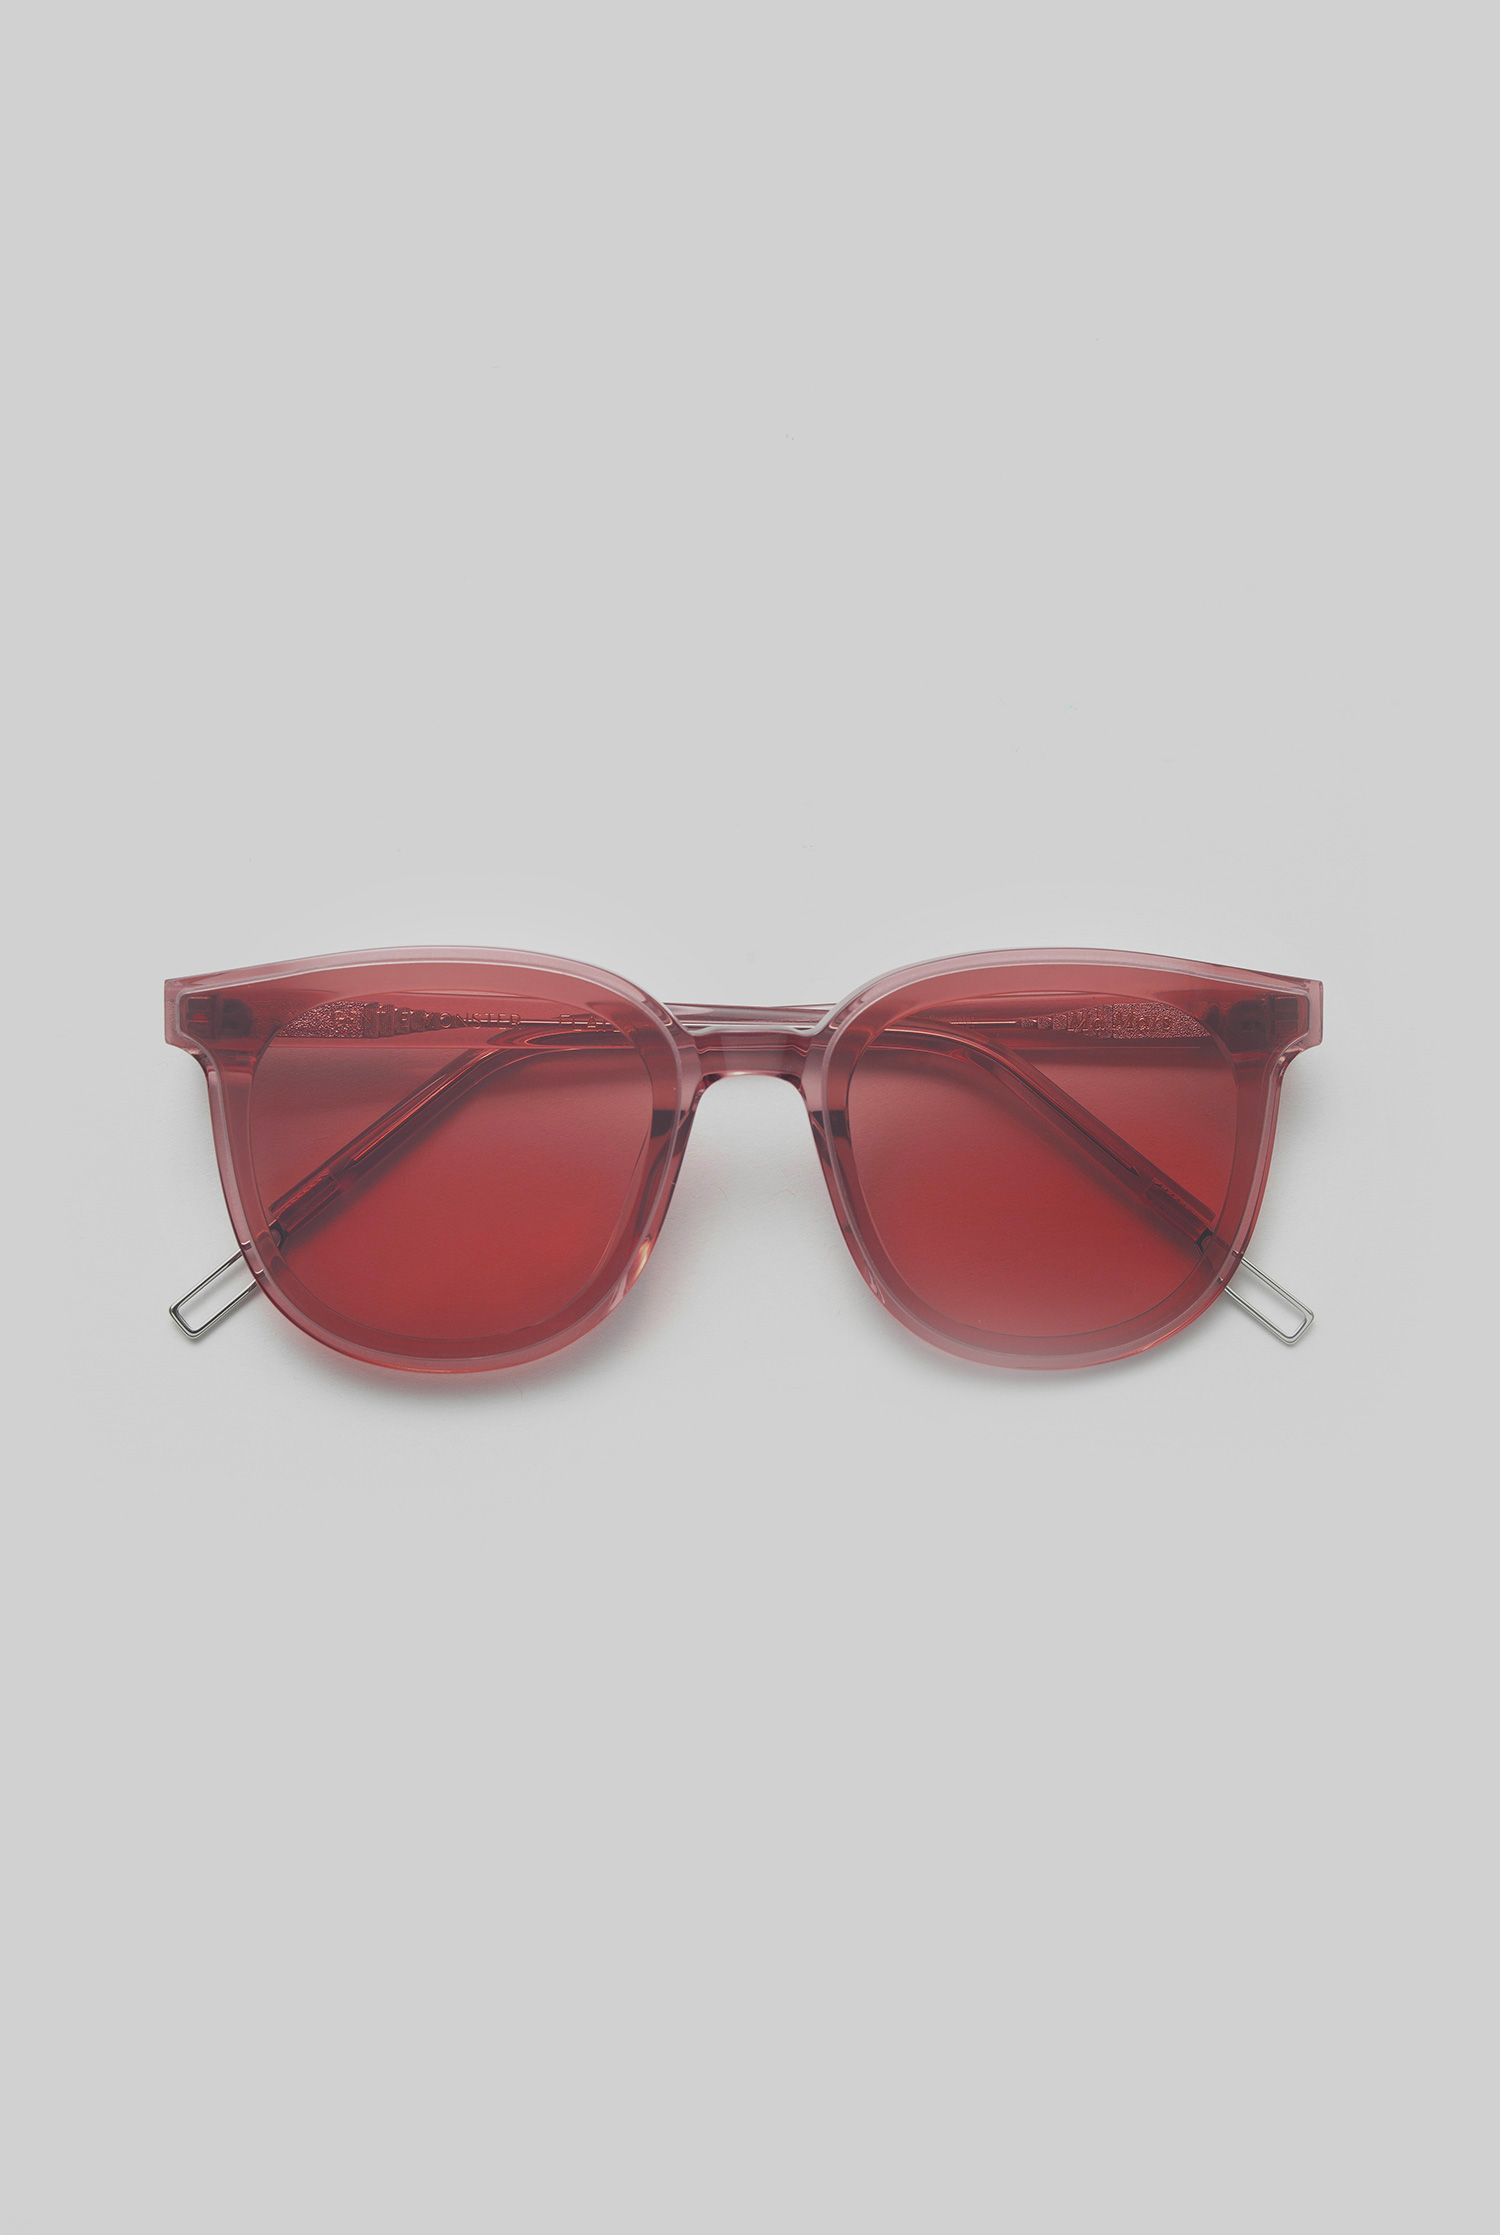 9c503be09af GENTLE MONSTER 2018 Sunglasses MA MARS WC1 FLATBA